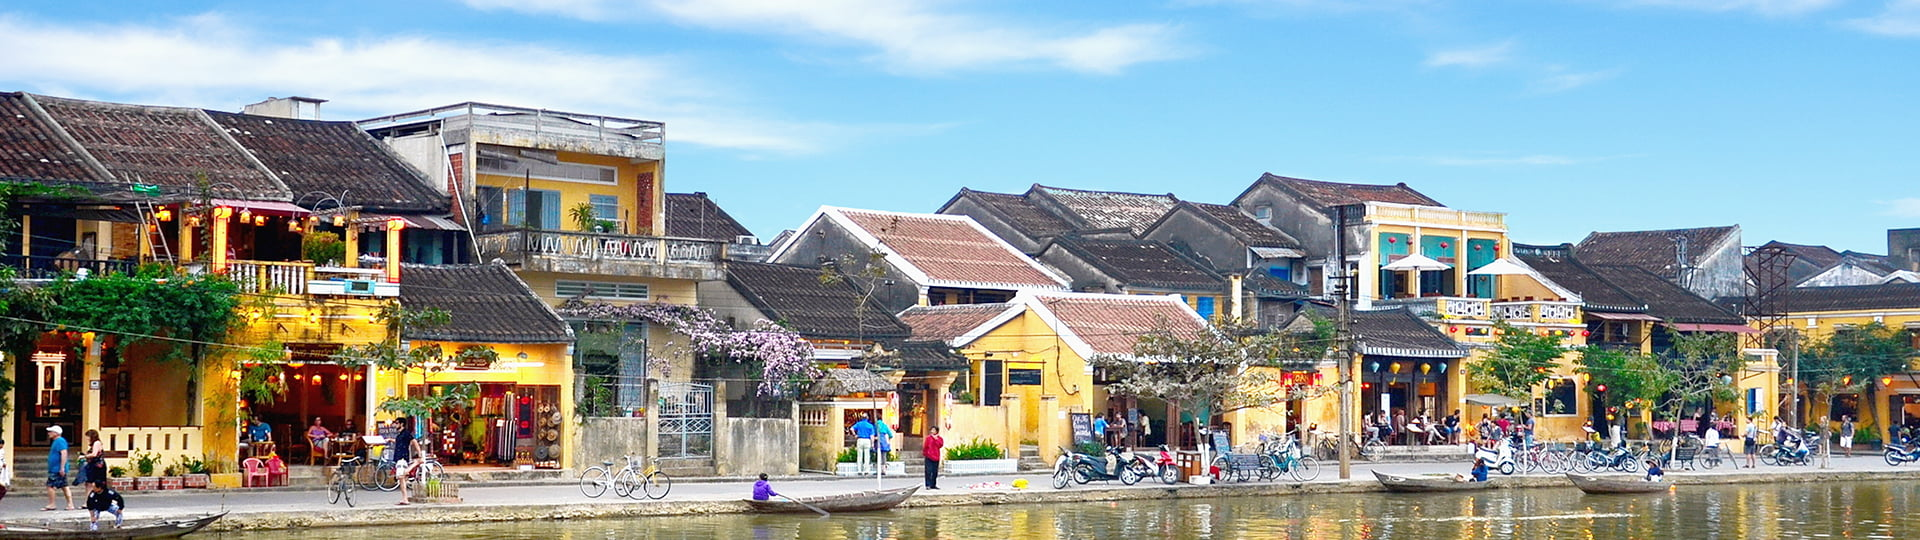 the captivating sight of the UNESCO Heritage Hoi An old town